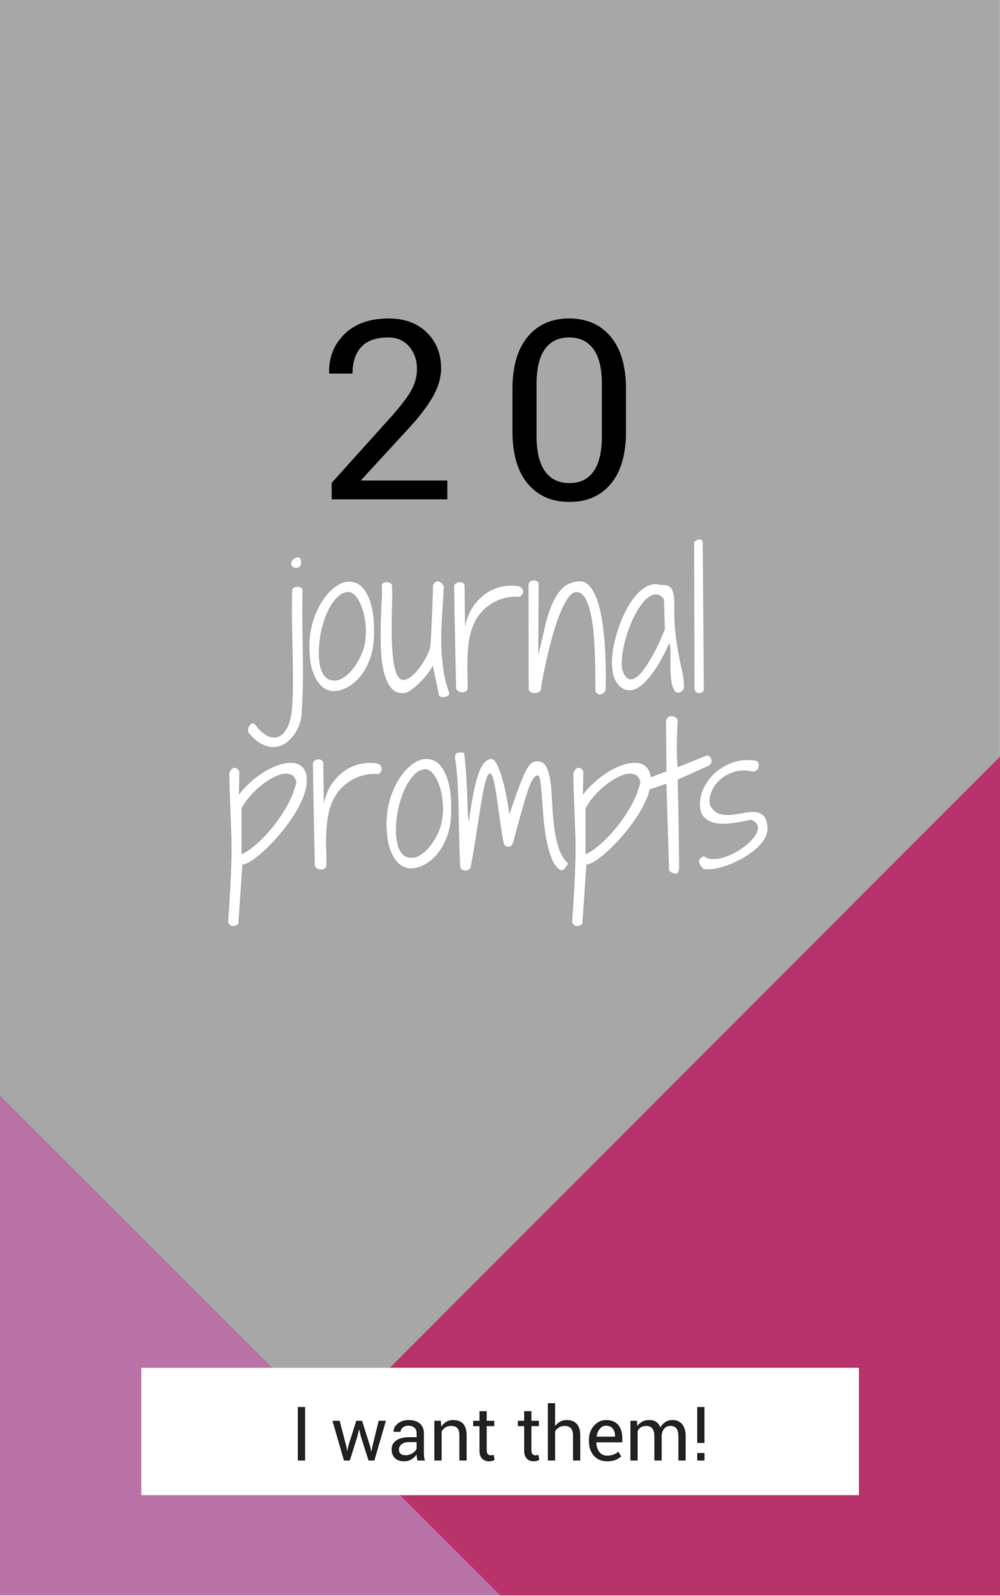 Need some writing inspiration? Try these 20 journal prompts. You'll gain more self-awareness and stretch your creativity with some creative nonfiction writing prompts.